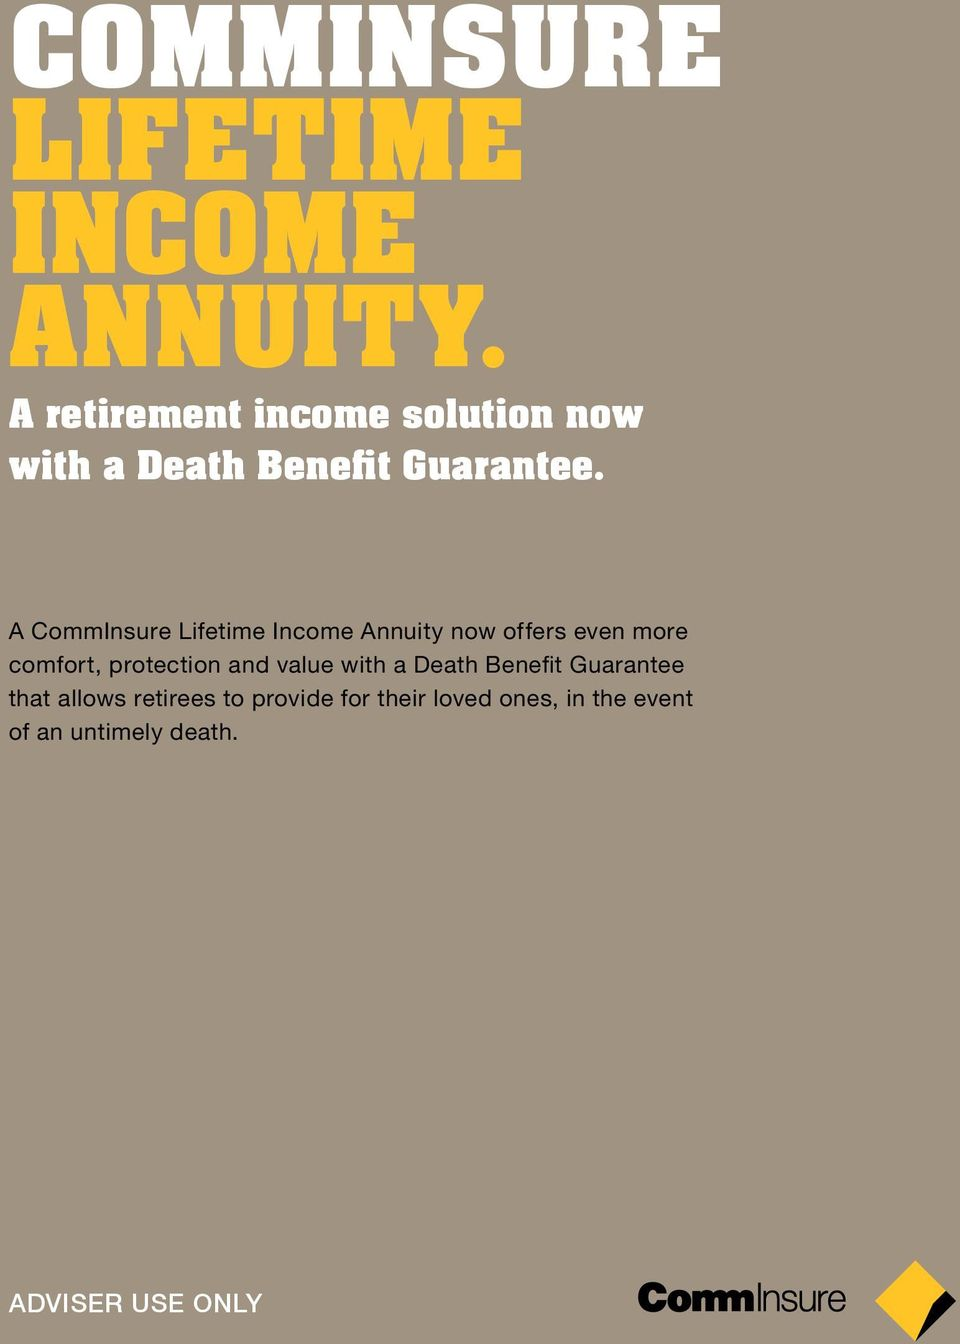 A CommInsure Lifetime Income Annuity now offers even more comfort, protection and